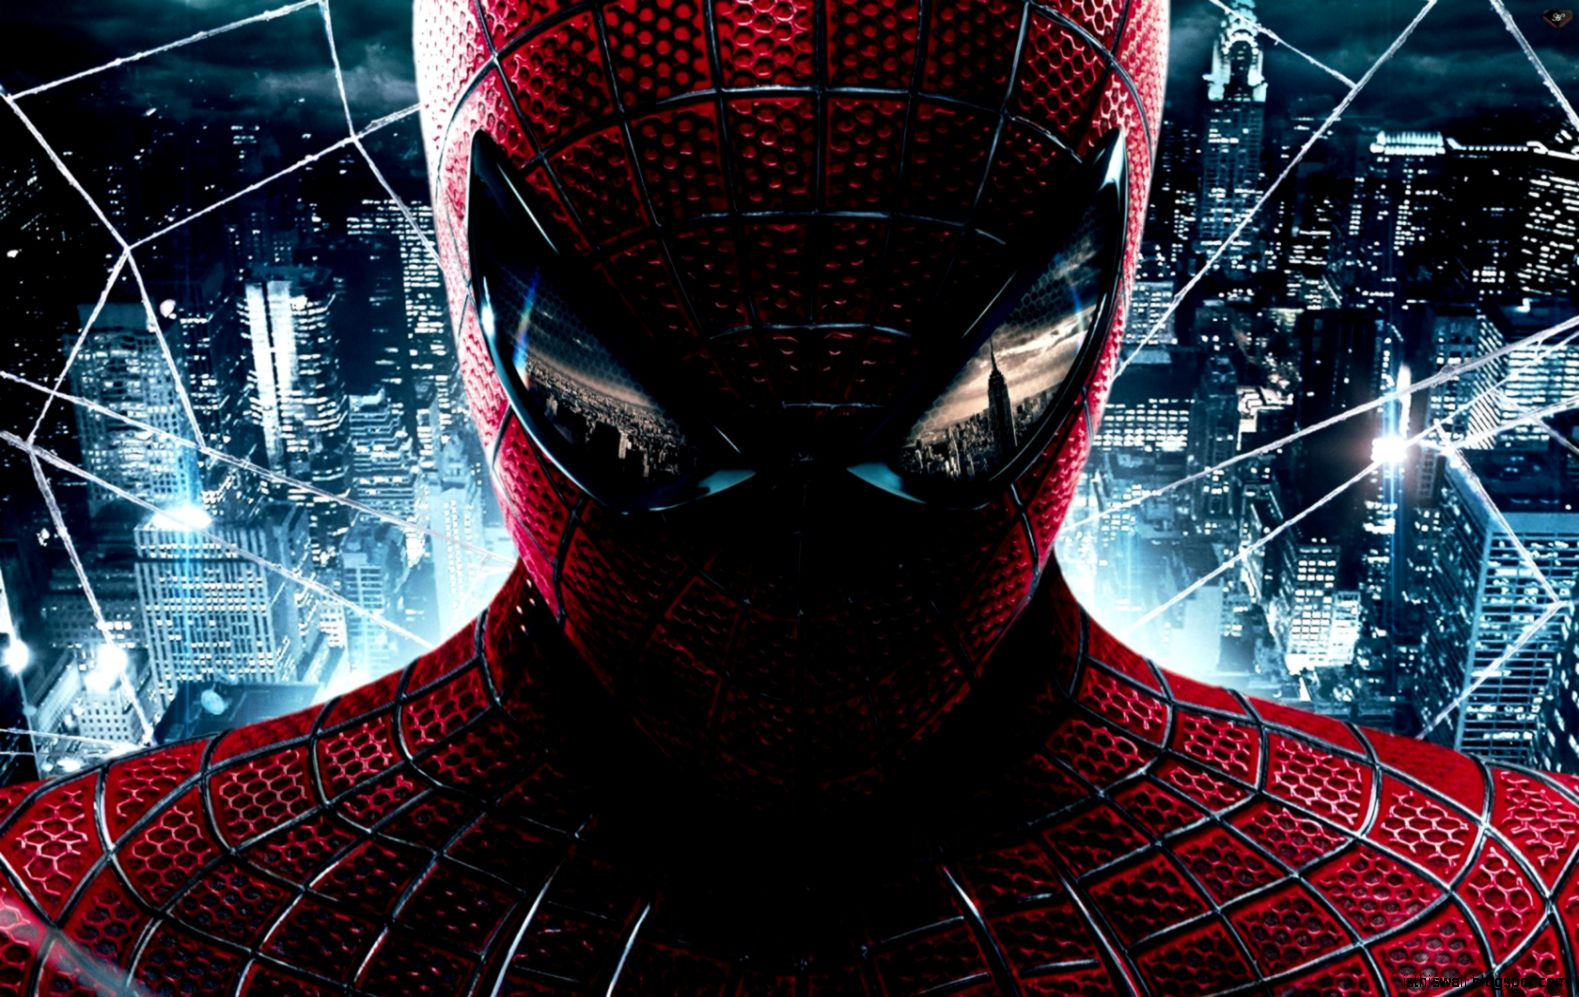 Spiderman 4 HD Wallpapers  Spiderman 4 Images  Cool Wallpapers